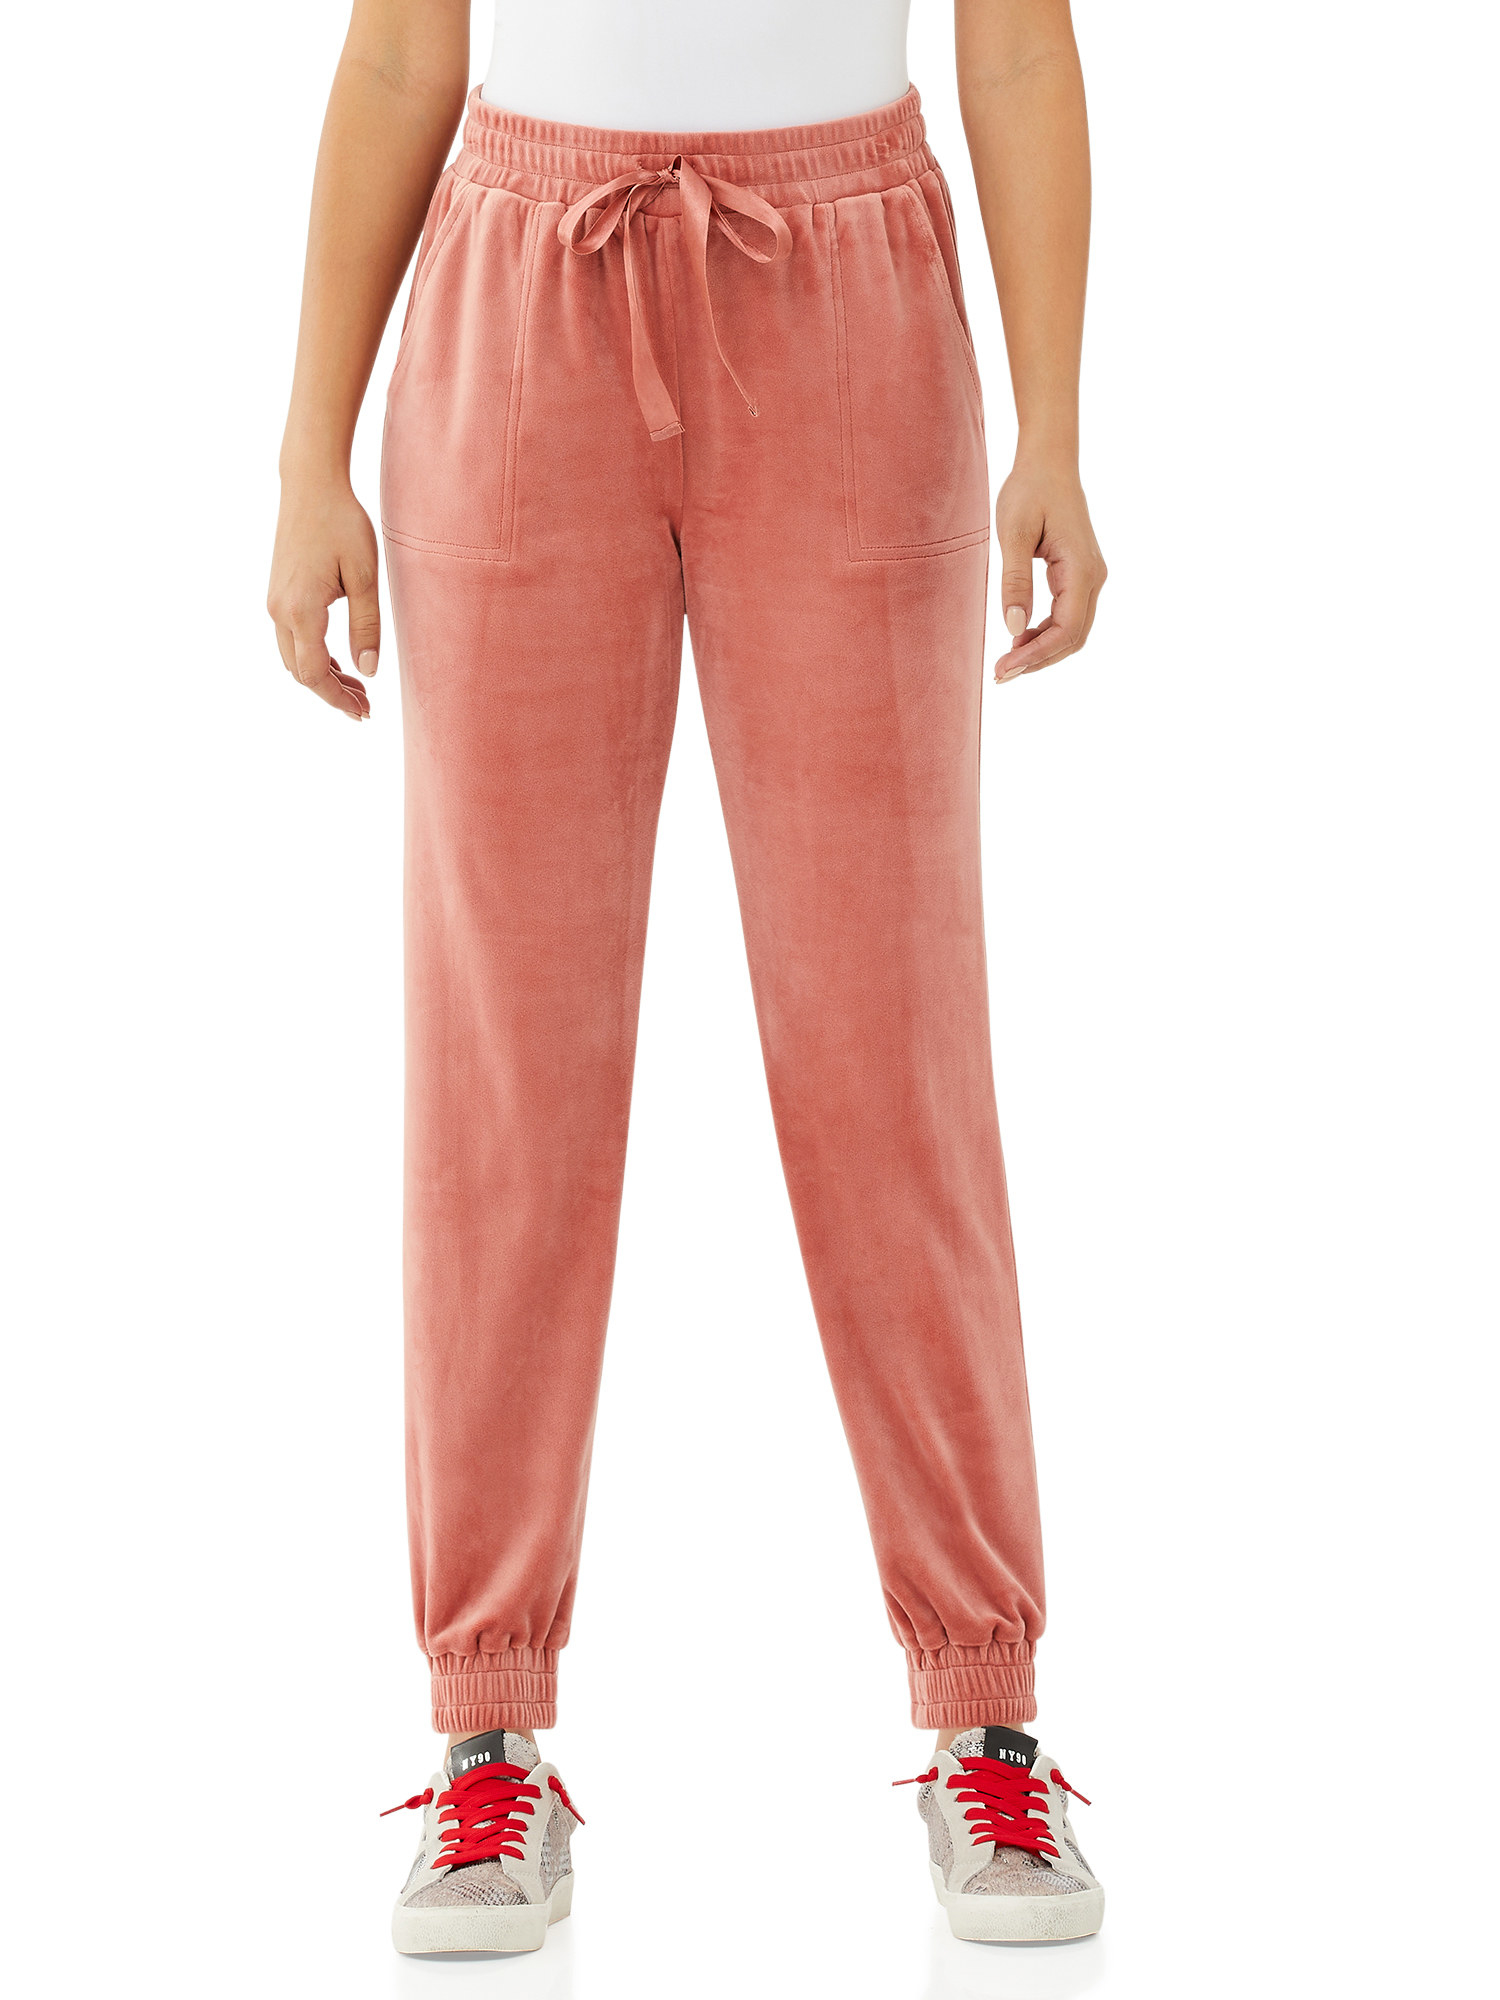 The velour joggers